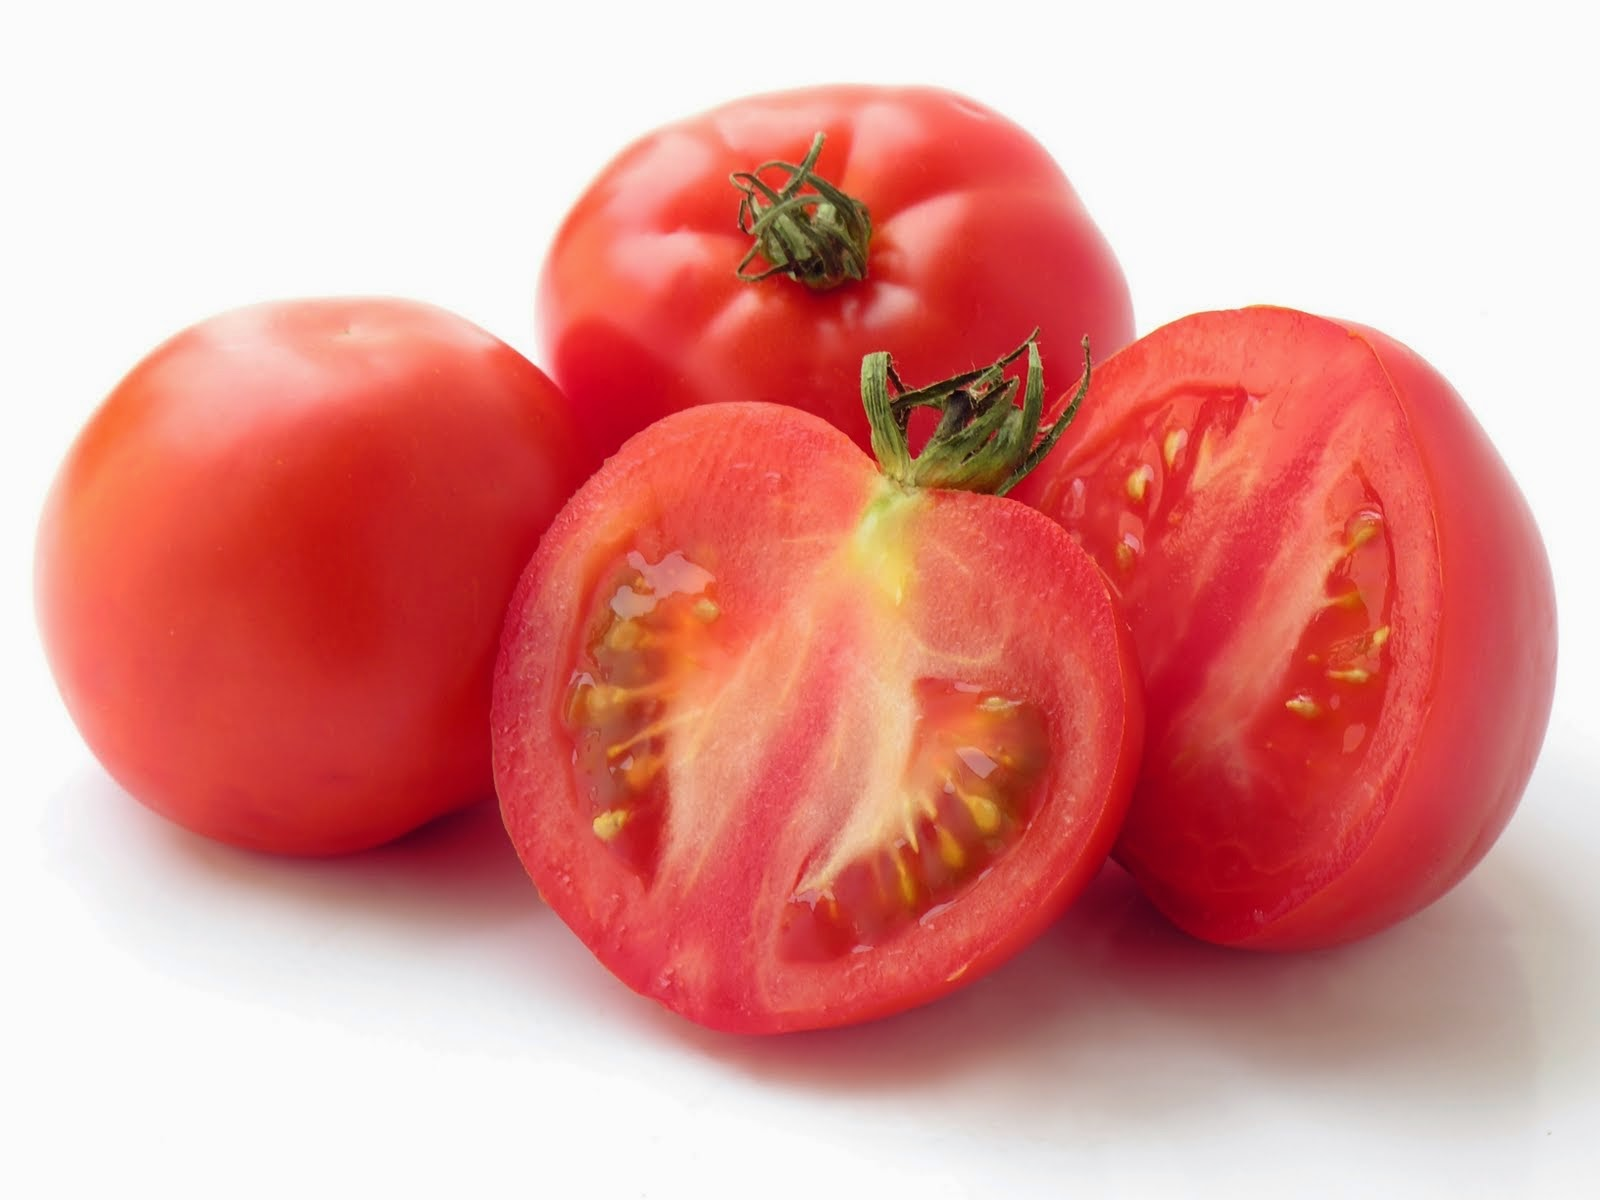 Tomatoes (Multi-nutrients Food for Healthy Heart)